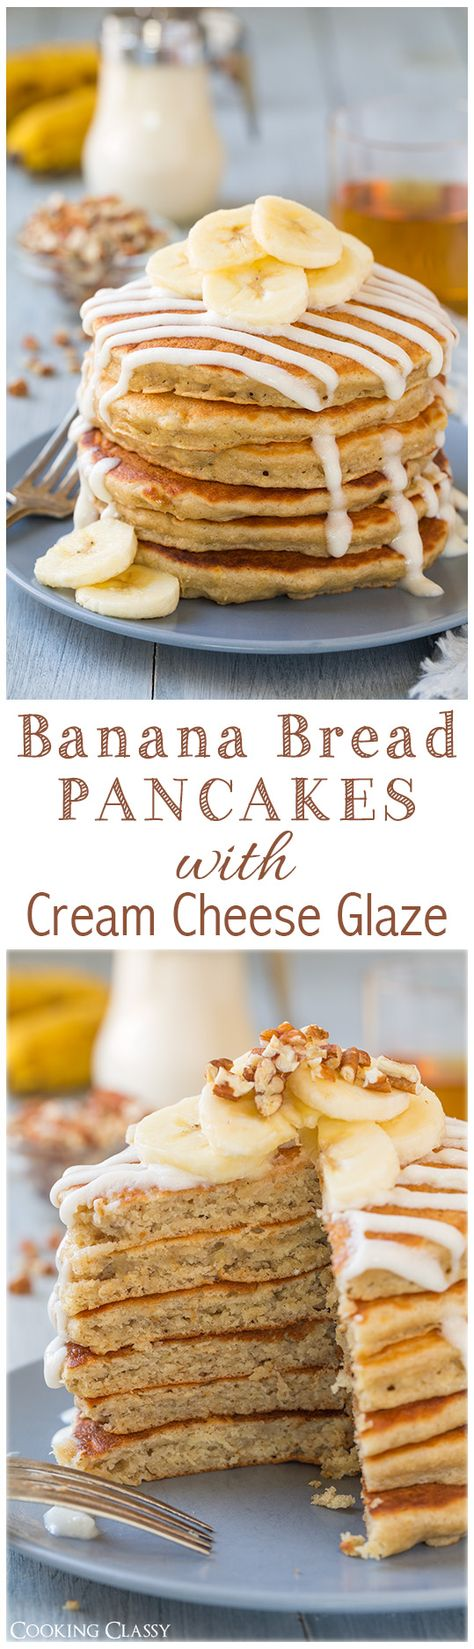 Banana Bread Pancakes with Cream Cheese Glaze - they really do taste just like banana bread but they are ready so much faster than a loaf of banana bread. LOVED them! And that glaze just takes them over the top. #bananabread #breakfast #pancakes #recipe